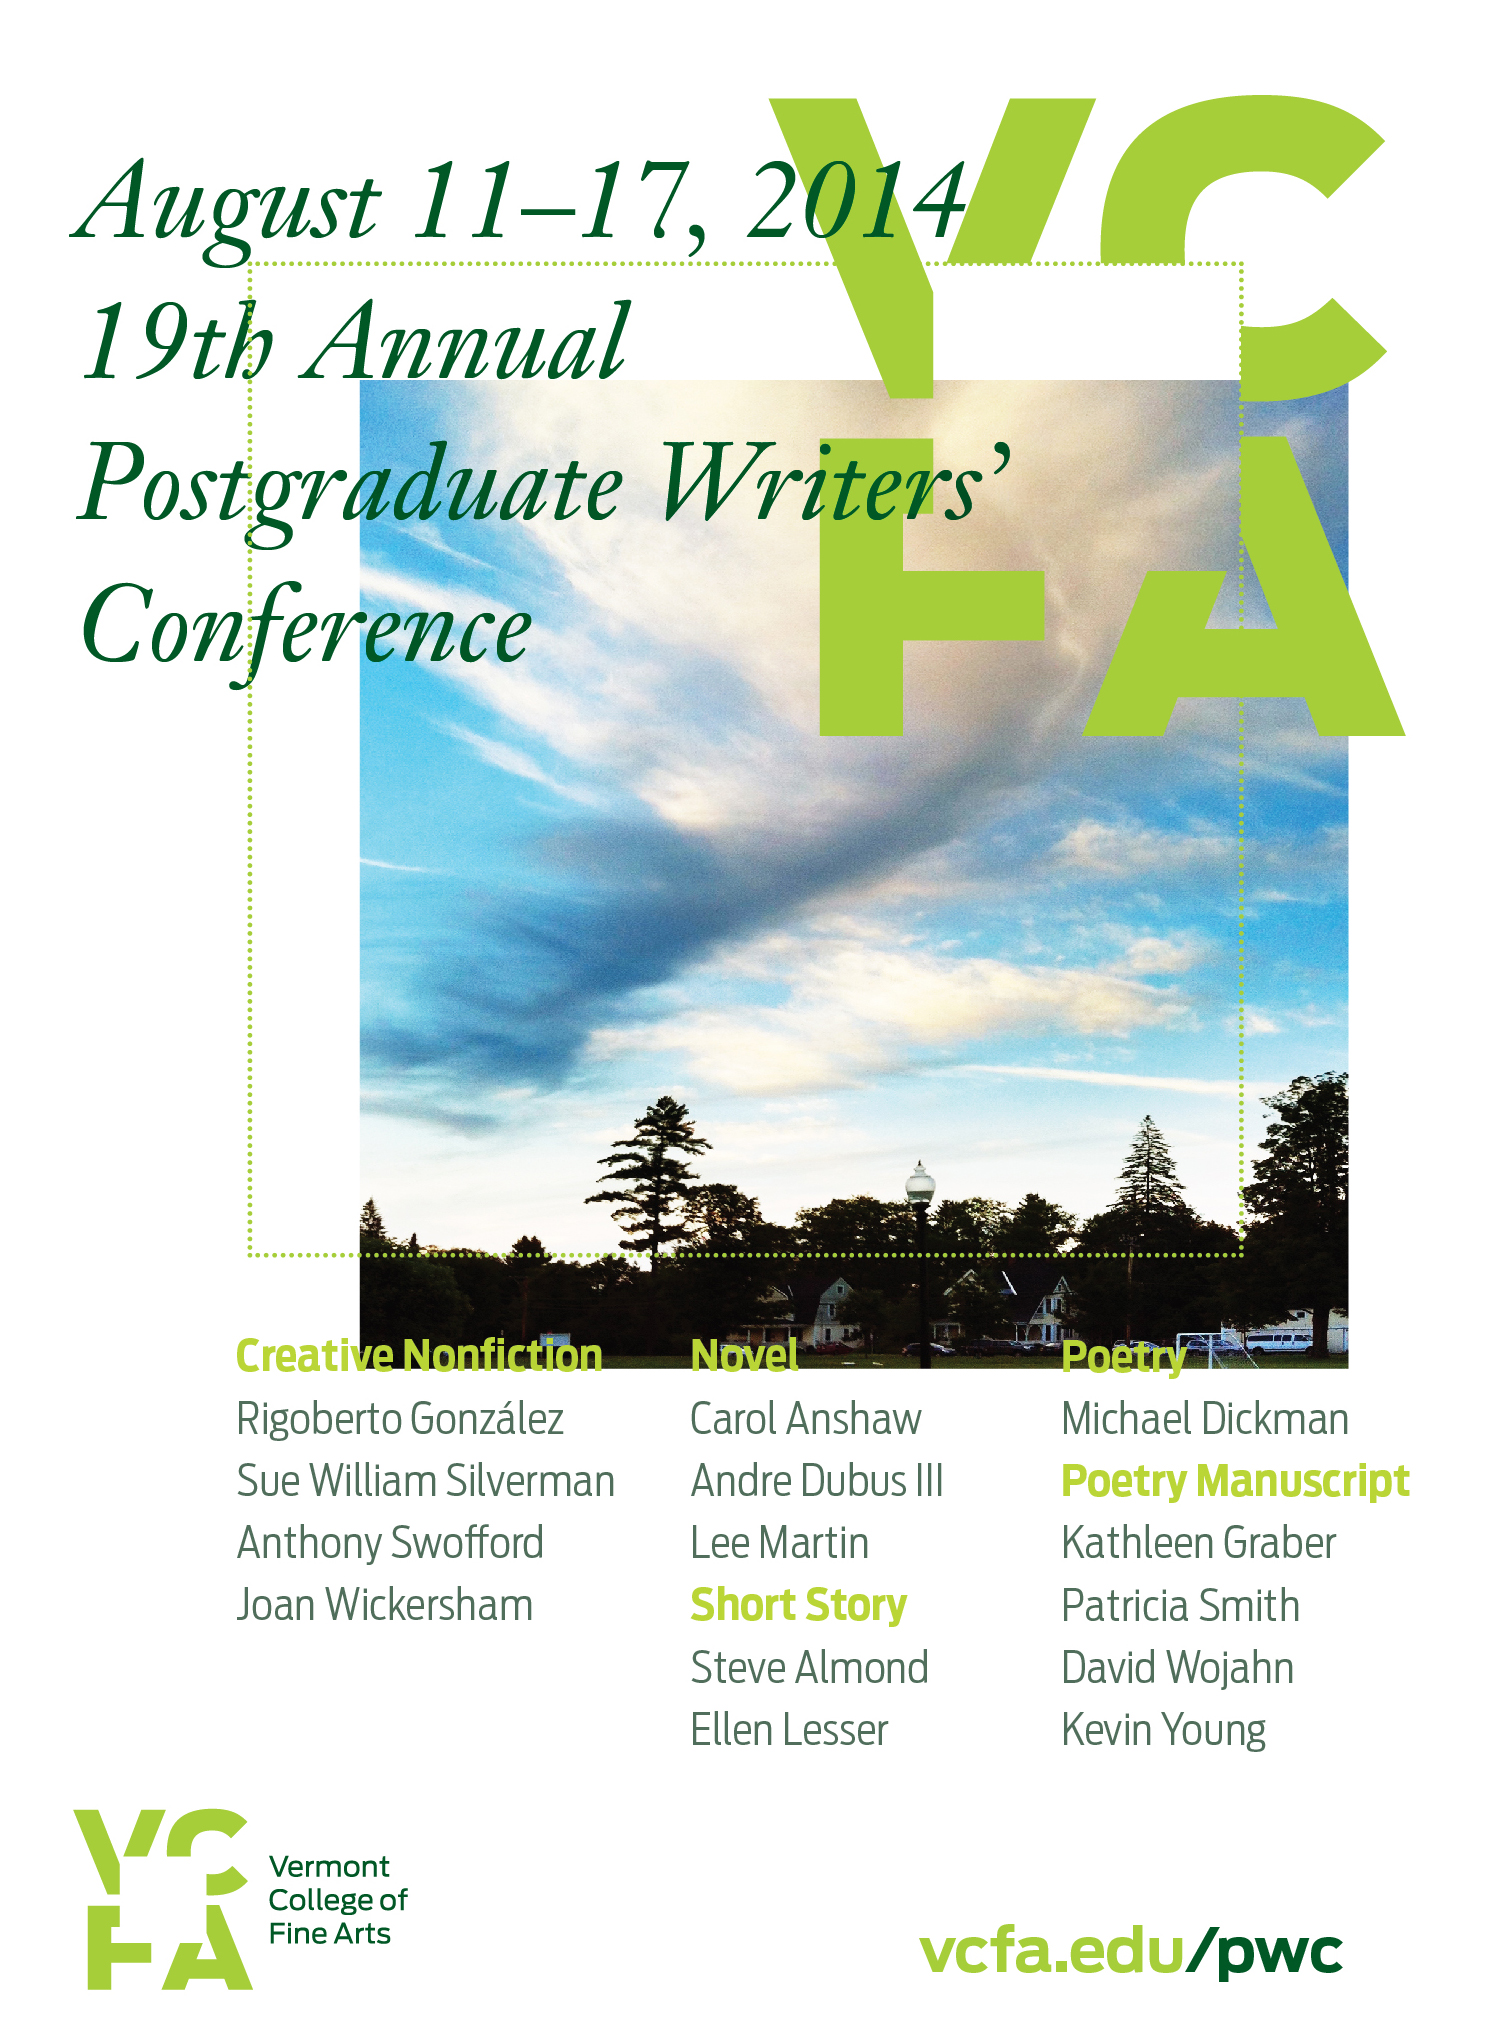 Carol Anshaw and Rigoberto Gonzalez at 2014 Postgraduate Writers' Conference